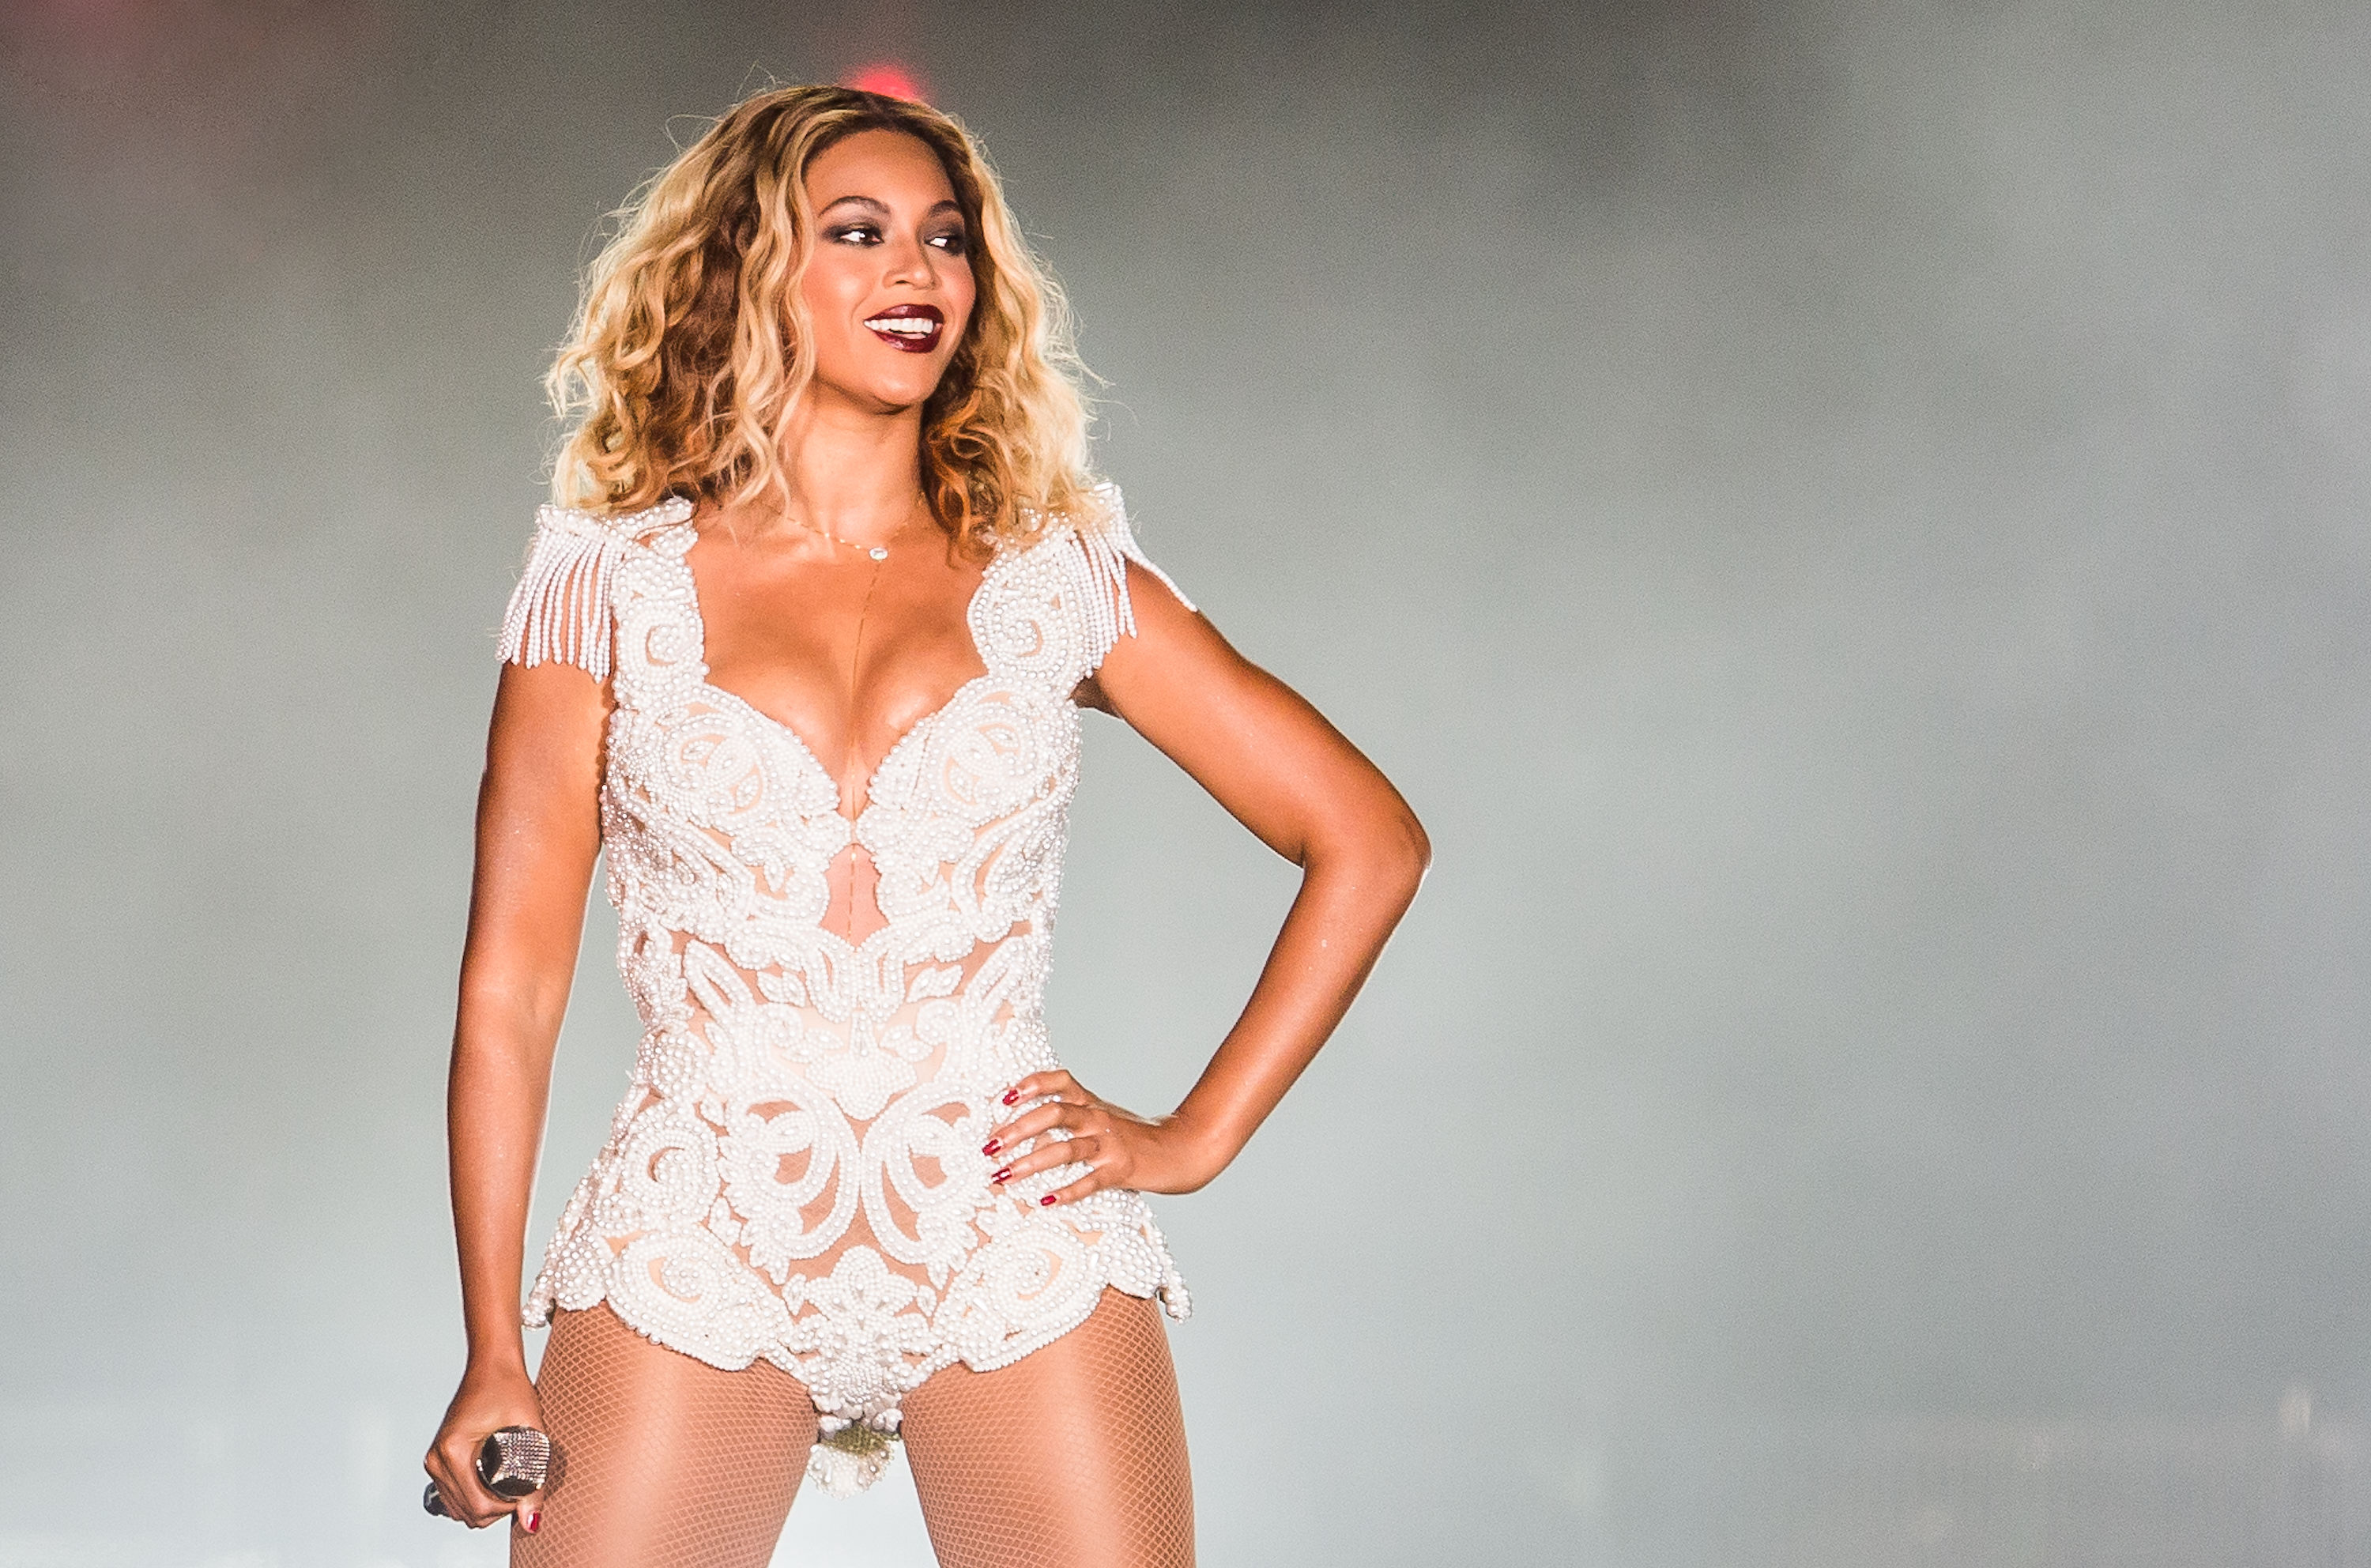 Beyonce performs on stage during a concert in the Rock in Rio Festival on Sept. 13, 2013 in Rio de Janeiro.